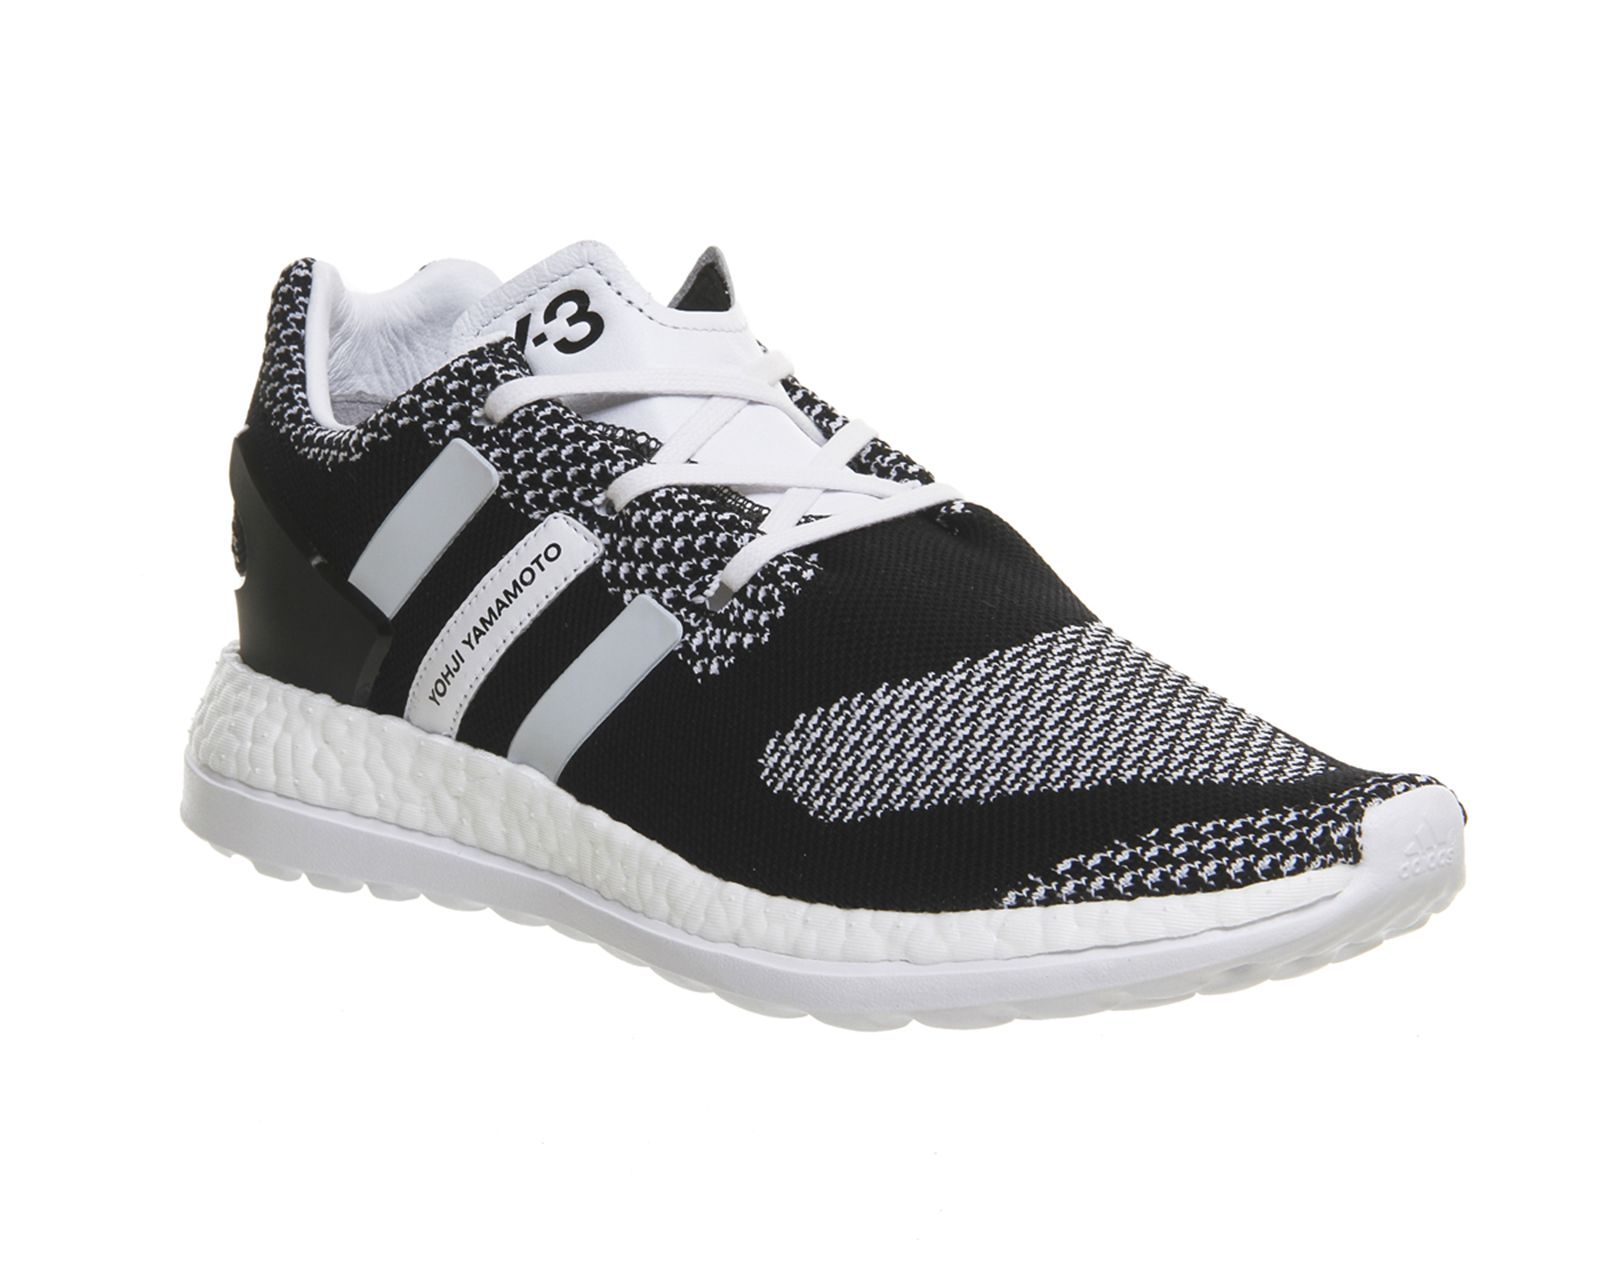 Adidas Pure Boost Zg Knit White Black White - His trainers